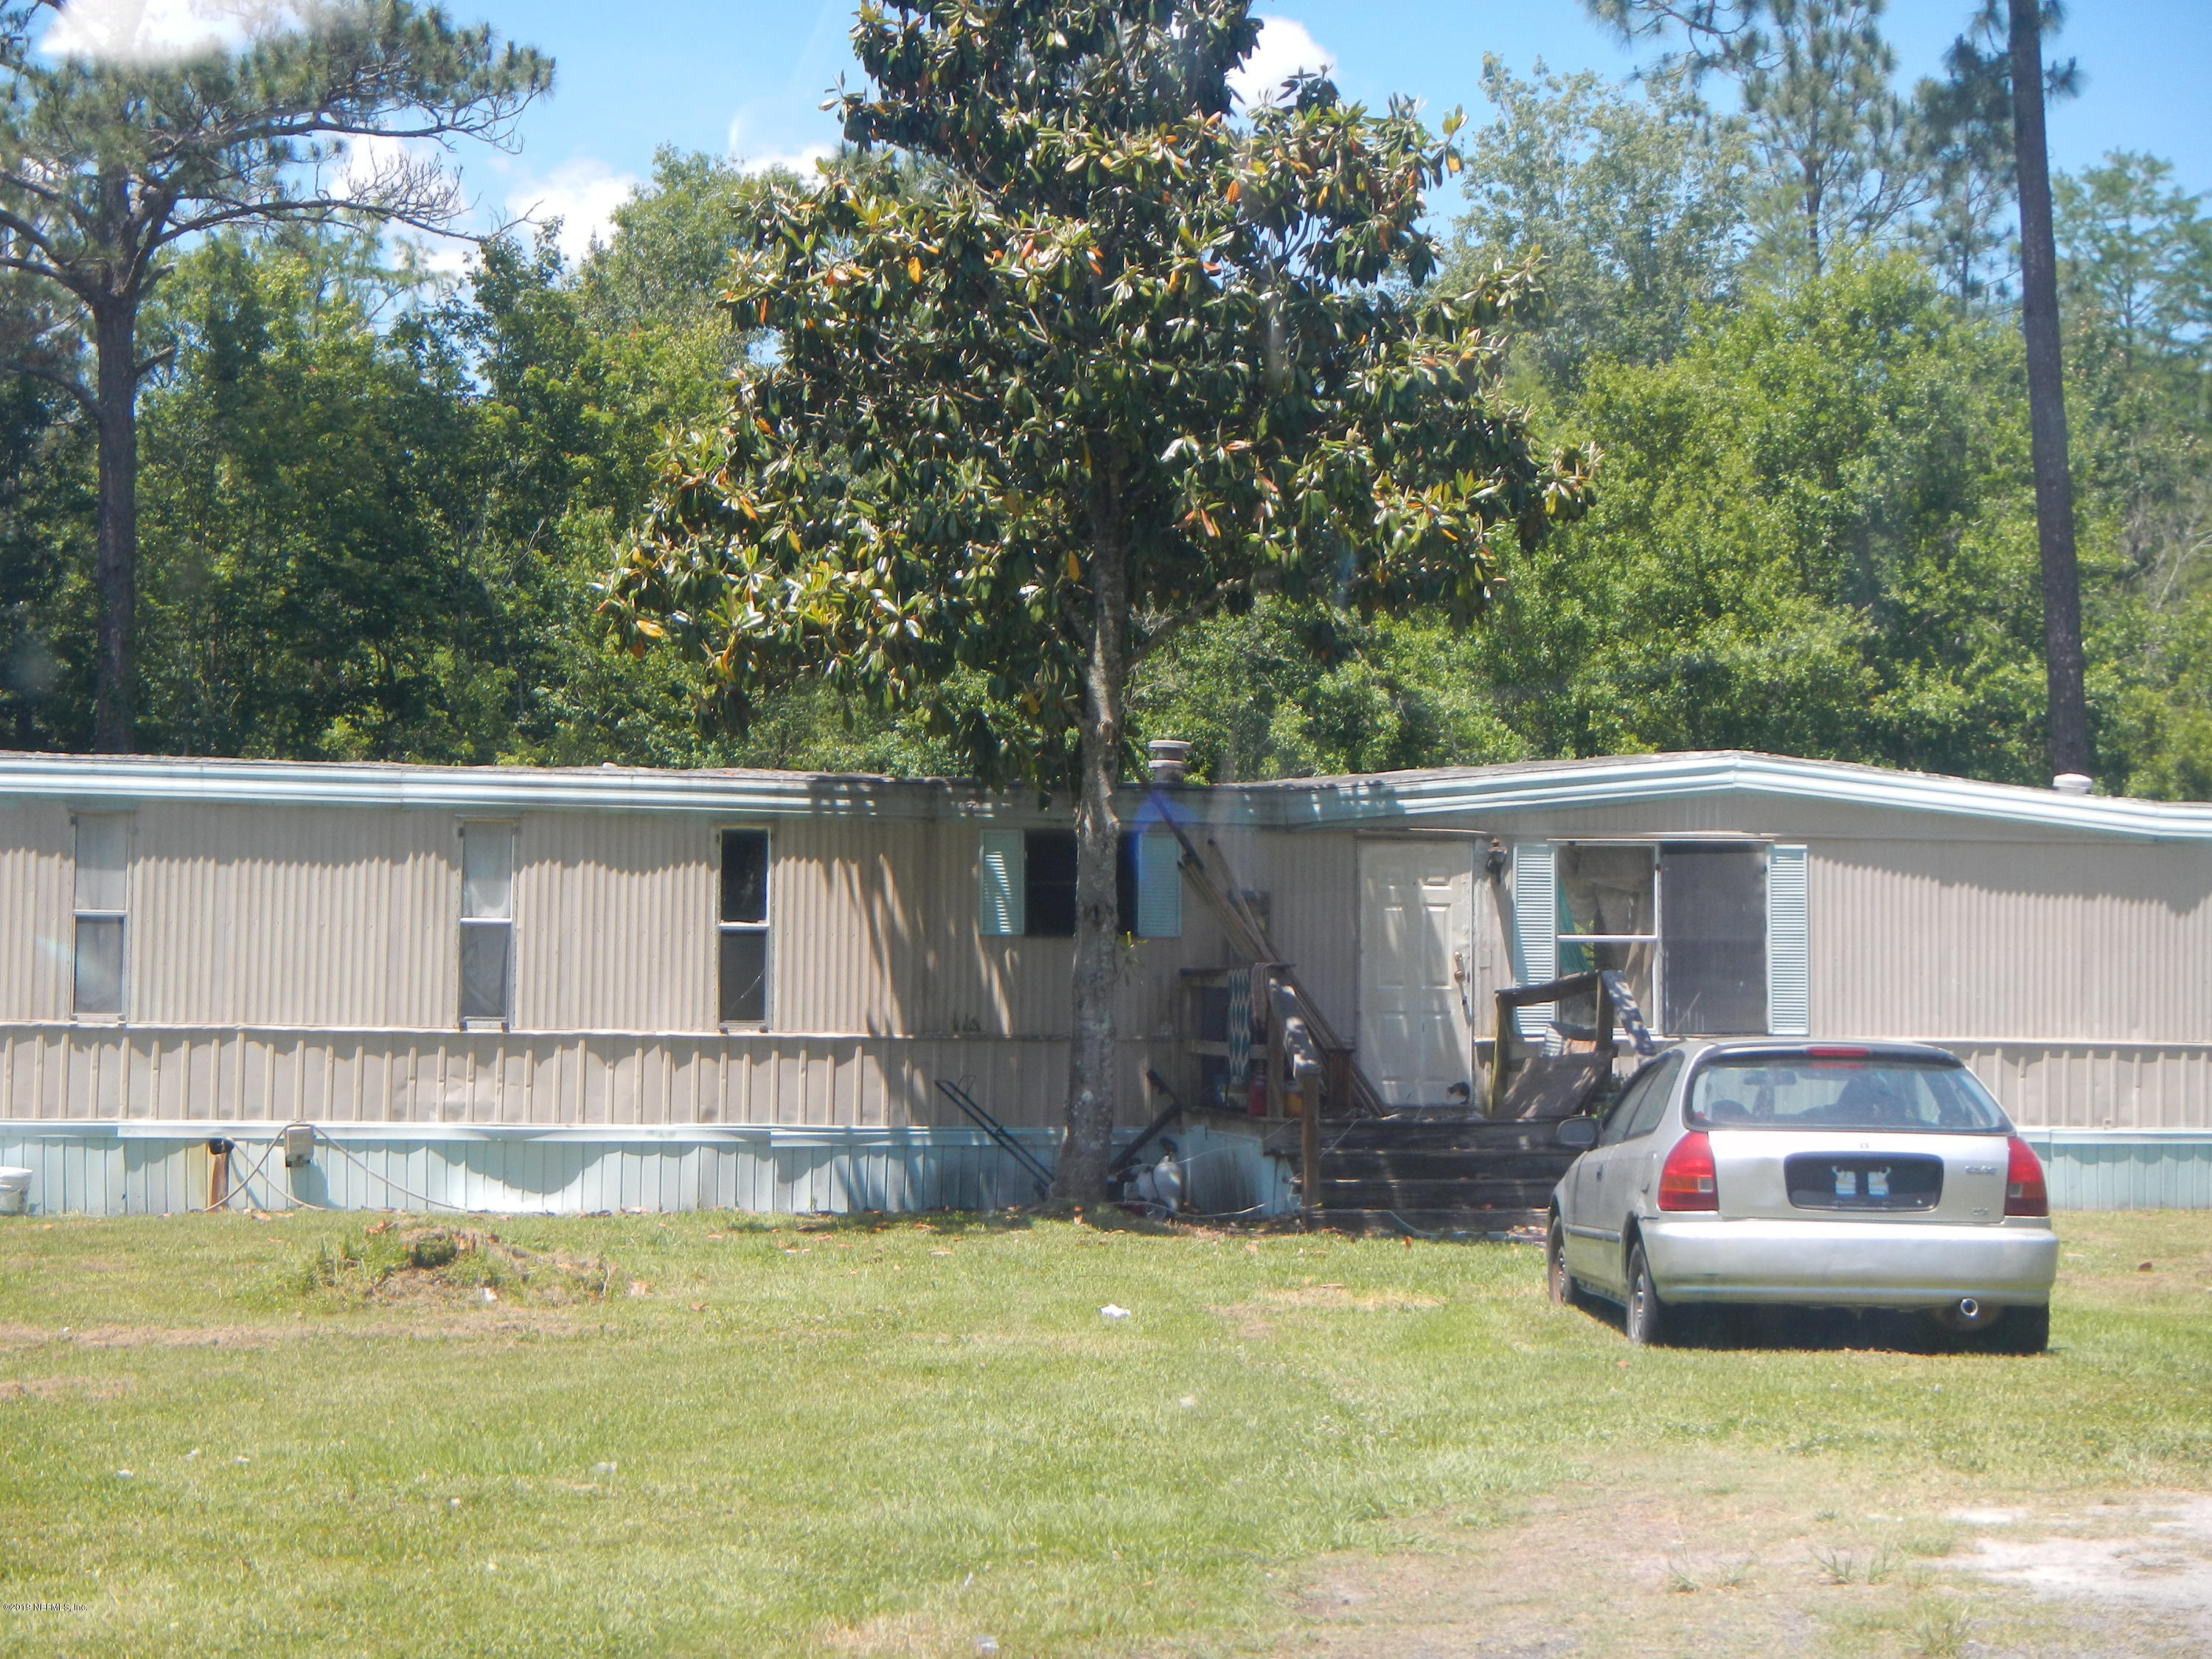 14328 COUNTY ROAD 100A, STARKE, FLORIDA 32091, 6 Bedrooms Bedrooms, ,3 BathroomsBathrooms,Residential,For sale,COUNTY ROAD 100A,992204